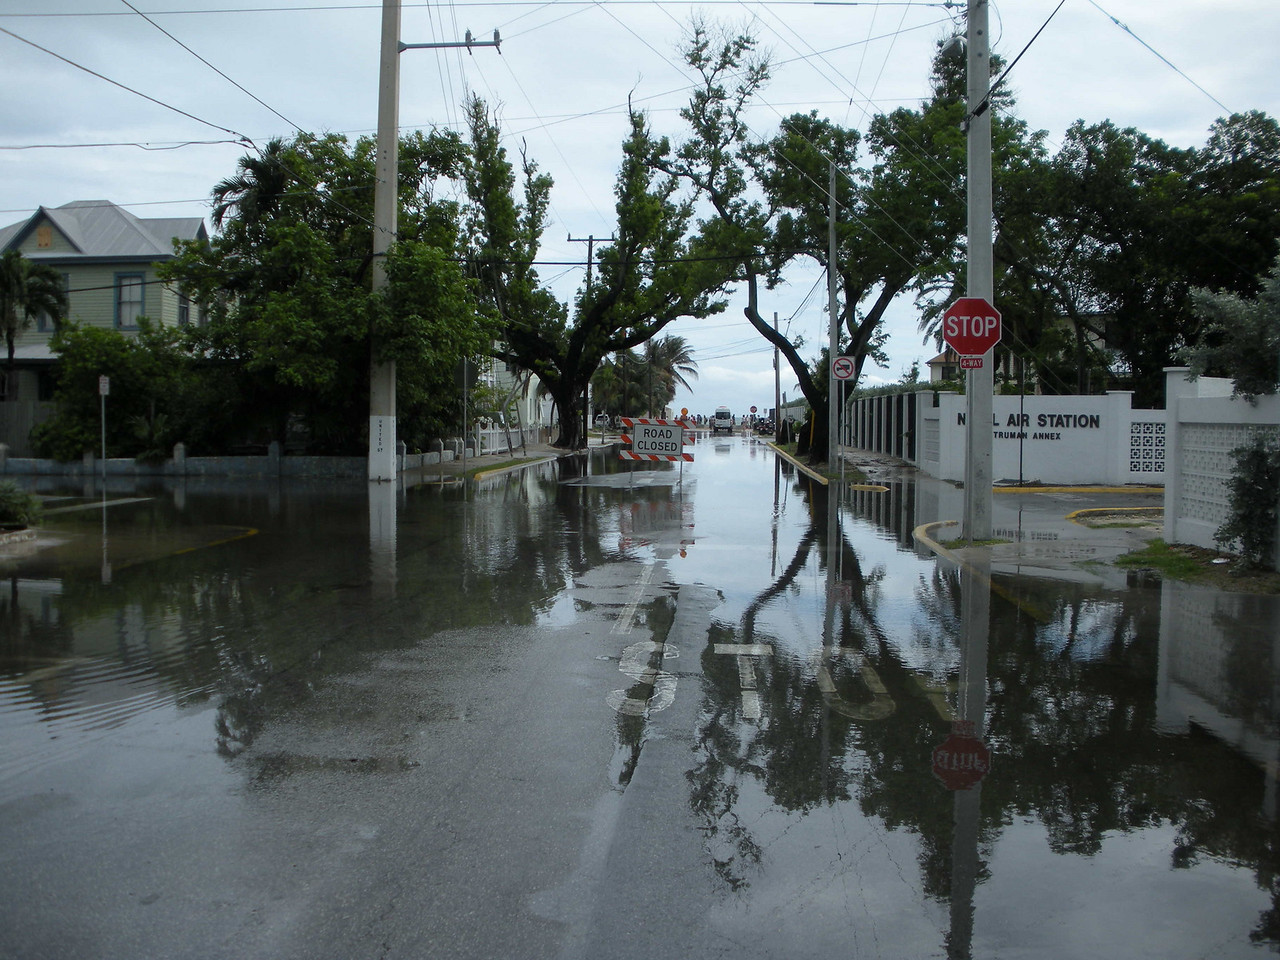 This was the rainiest season in Key West's recorded history.